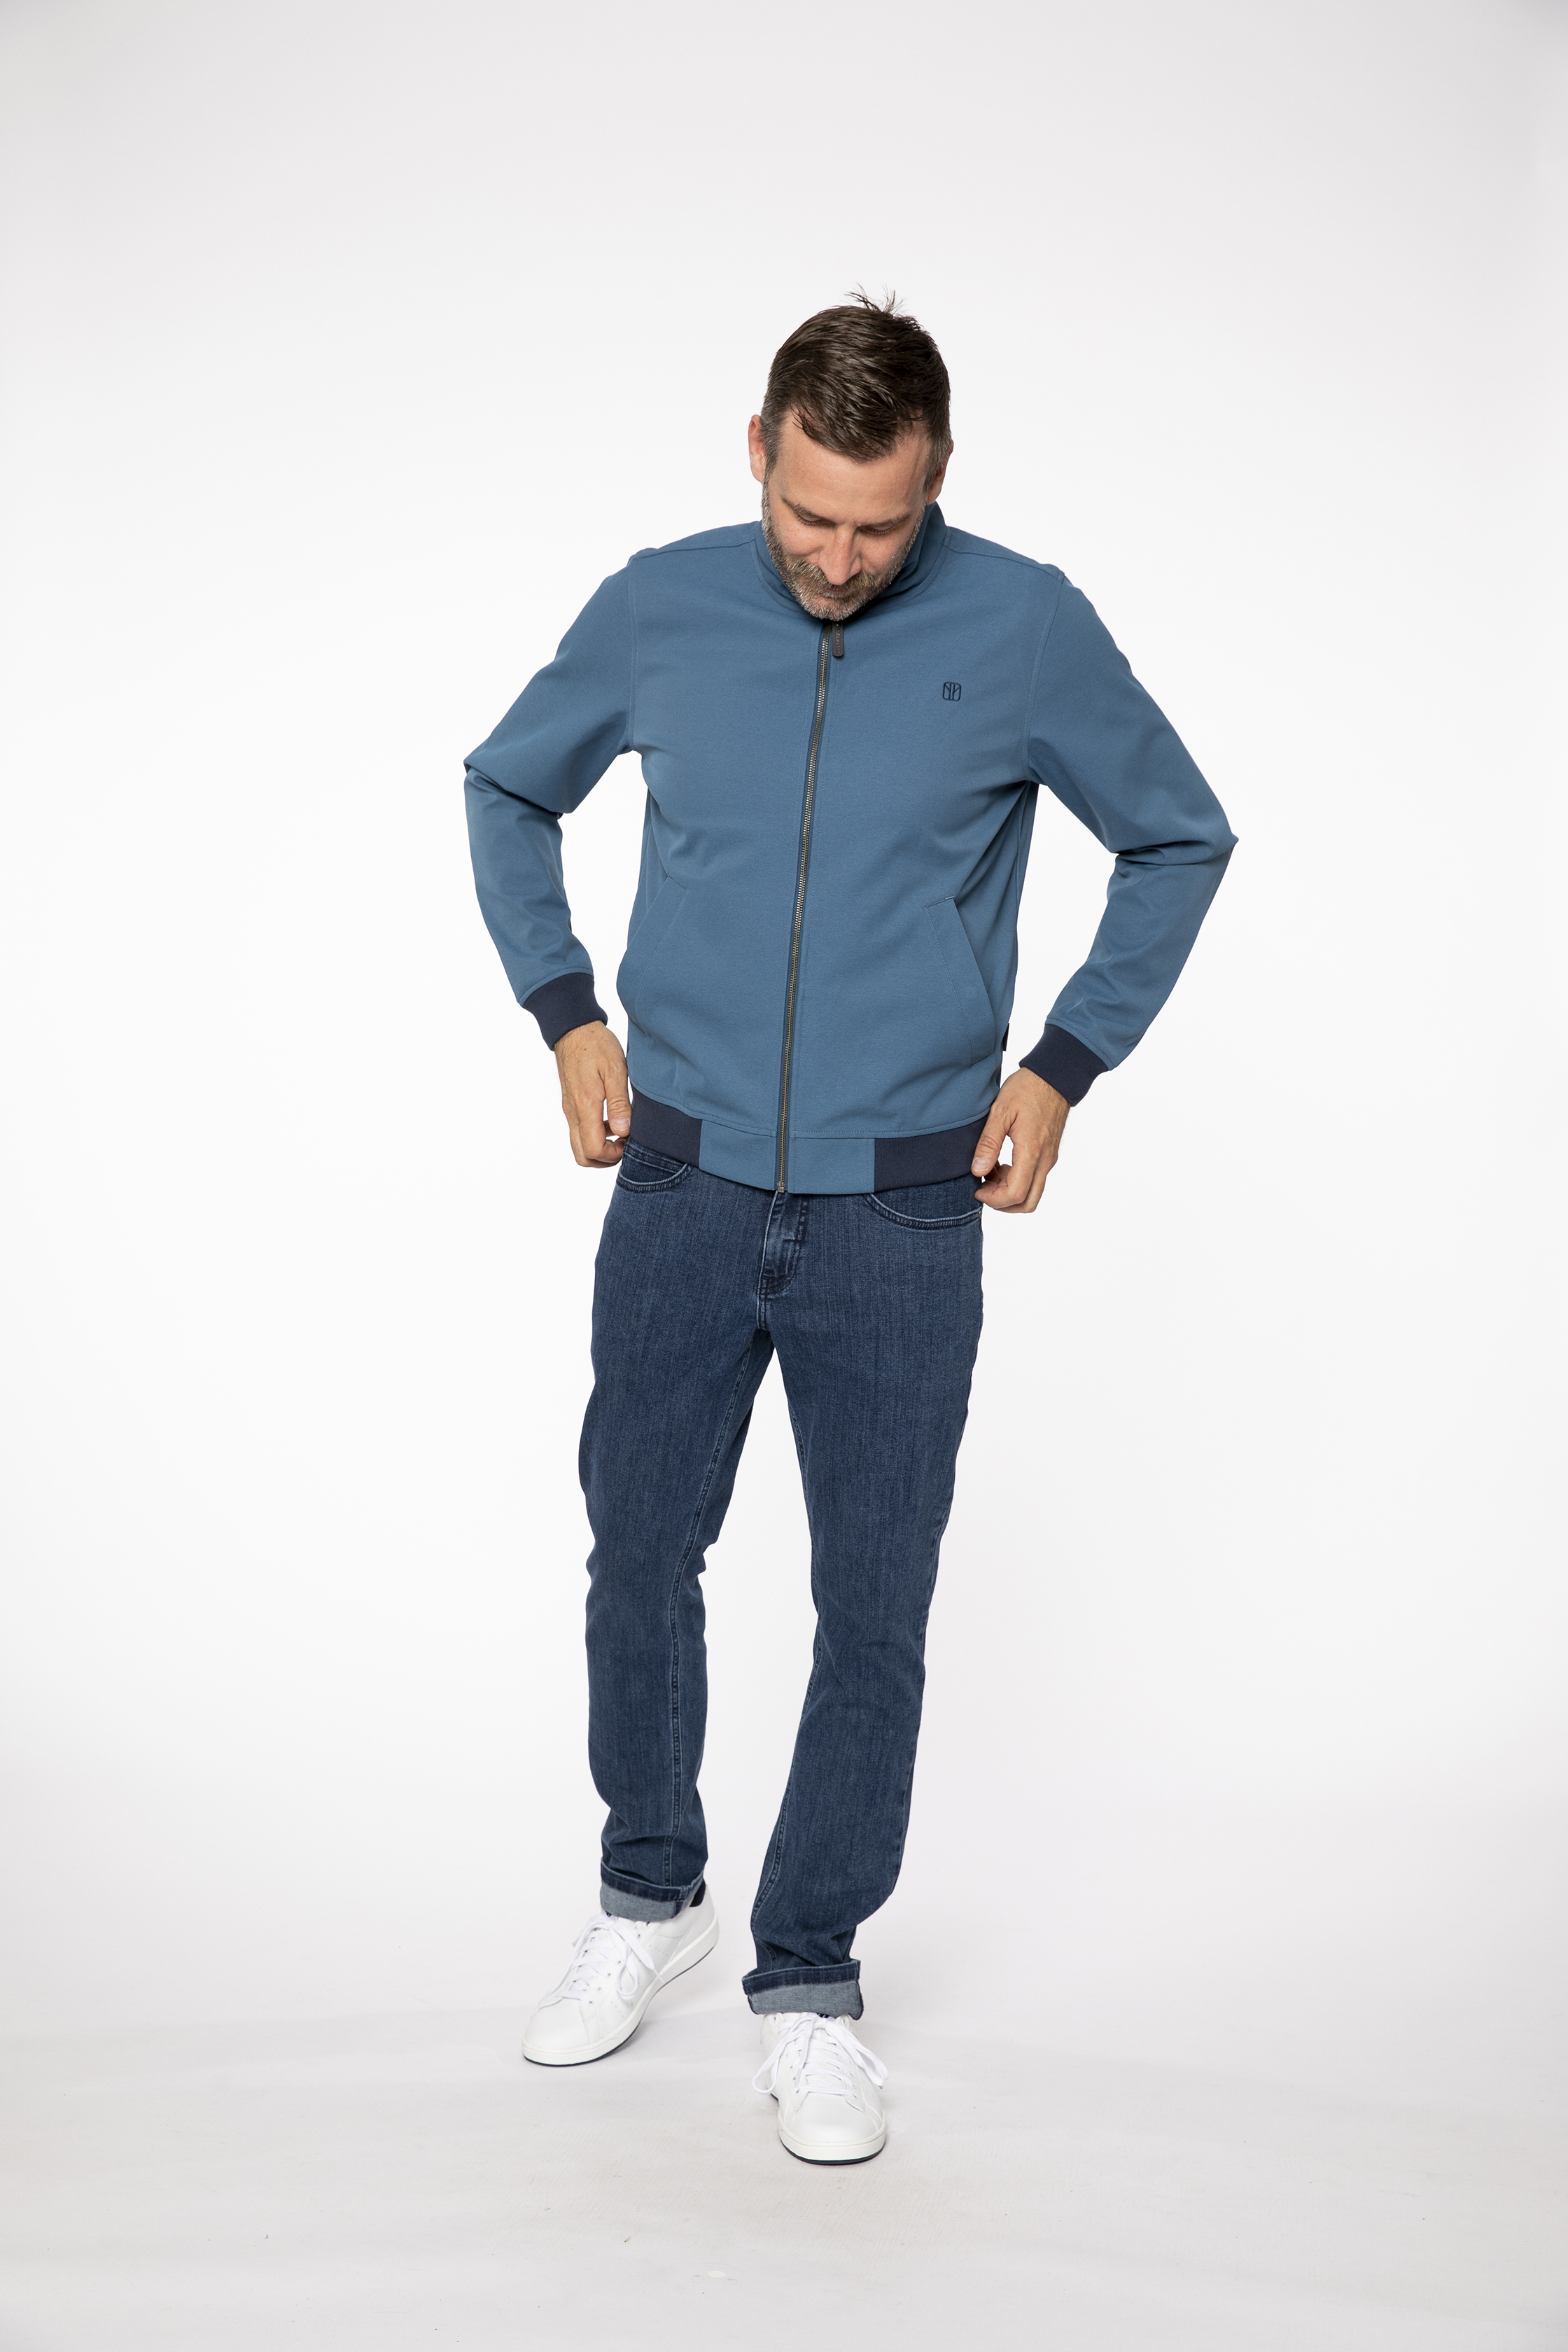 softshell jacket:  SOFTWEAR   denim pants:  COMPAGNON